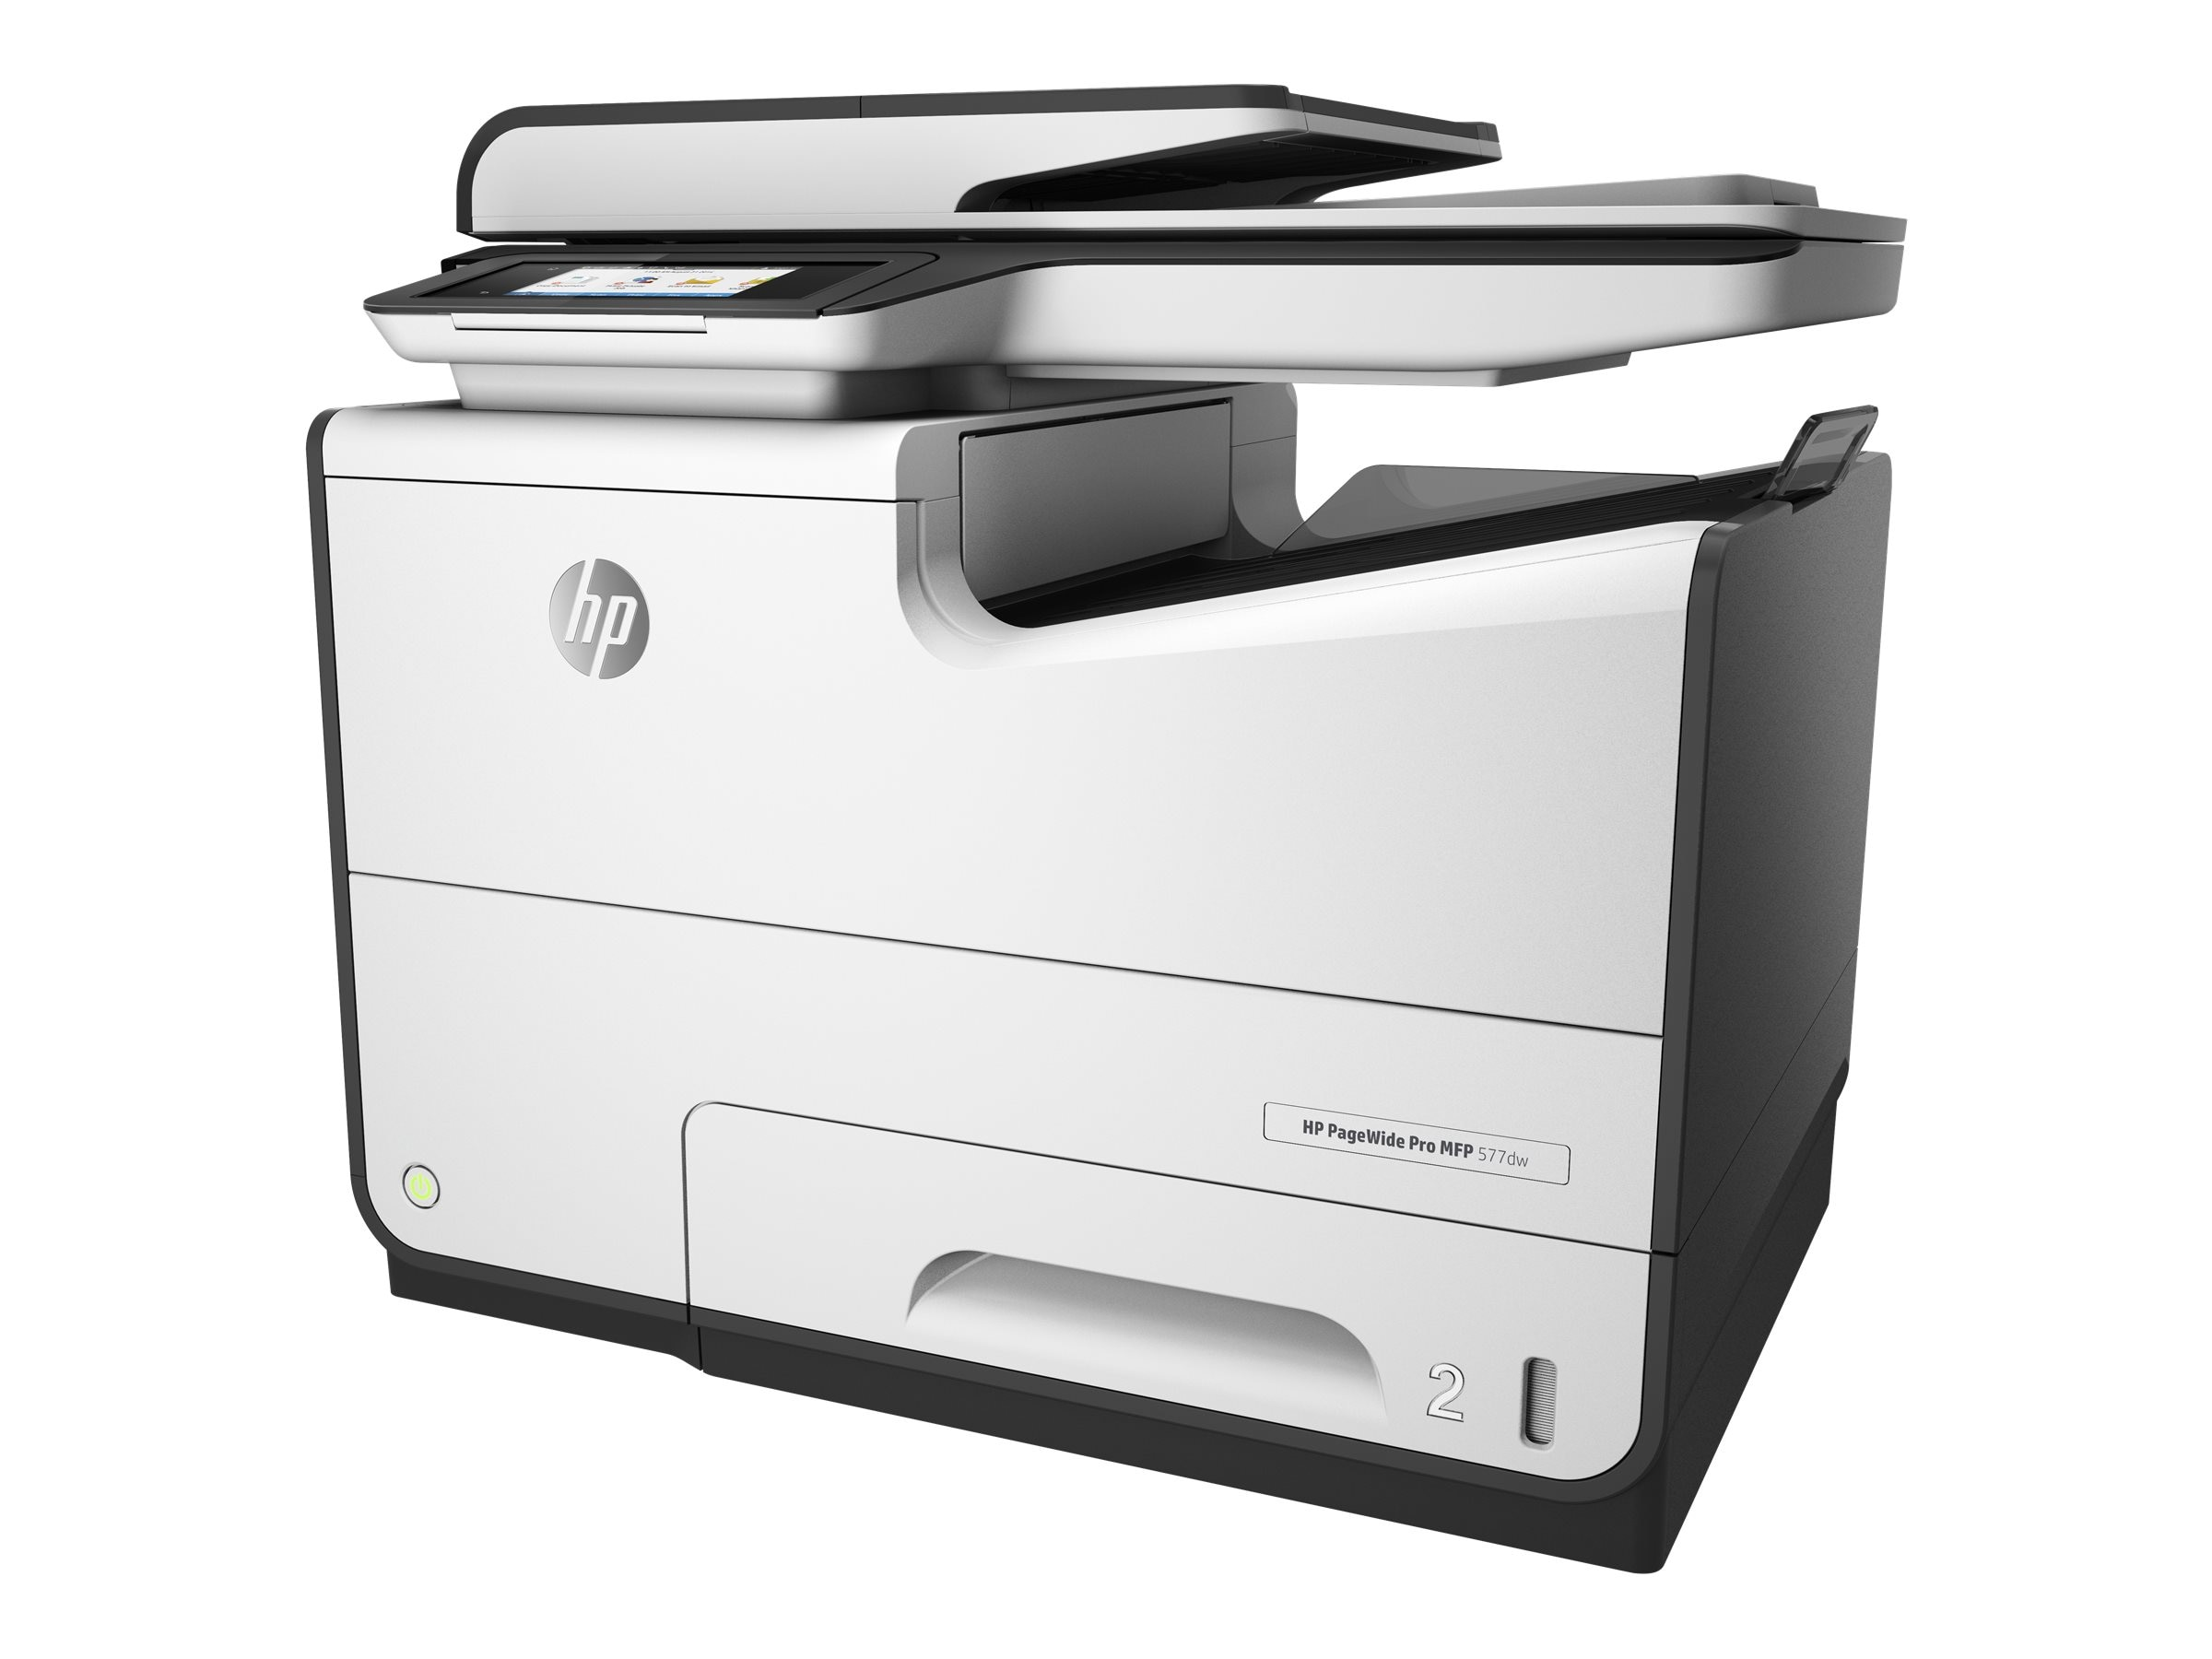 HP PageWide Pro 577dw Multifunction Printer (VPA)